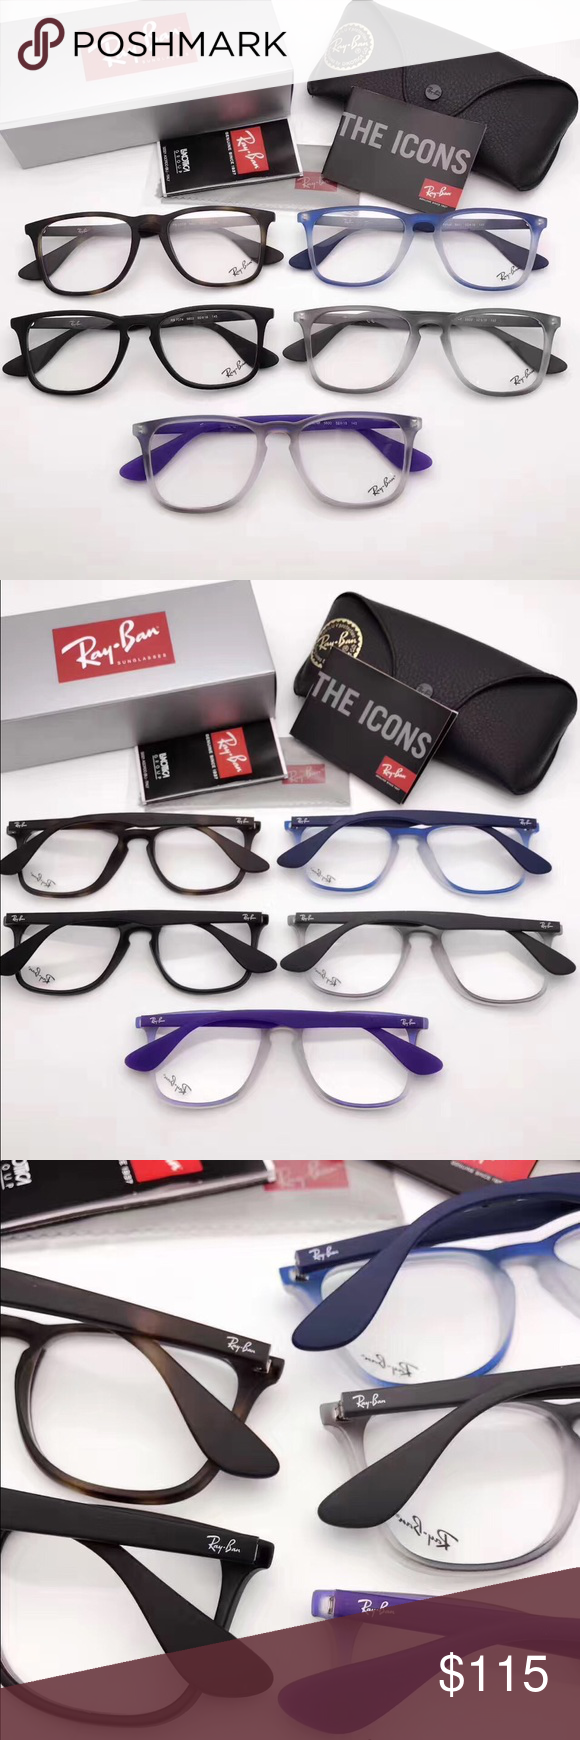 2988e11f55 new Ray Ban rb7074 full frame Eyeglasses Multiple colors available! New